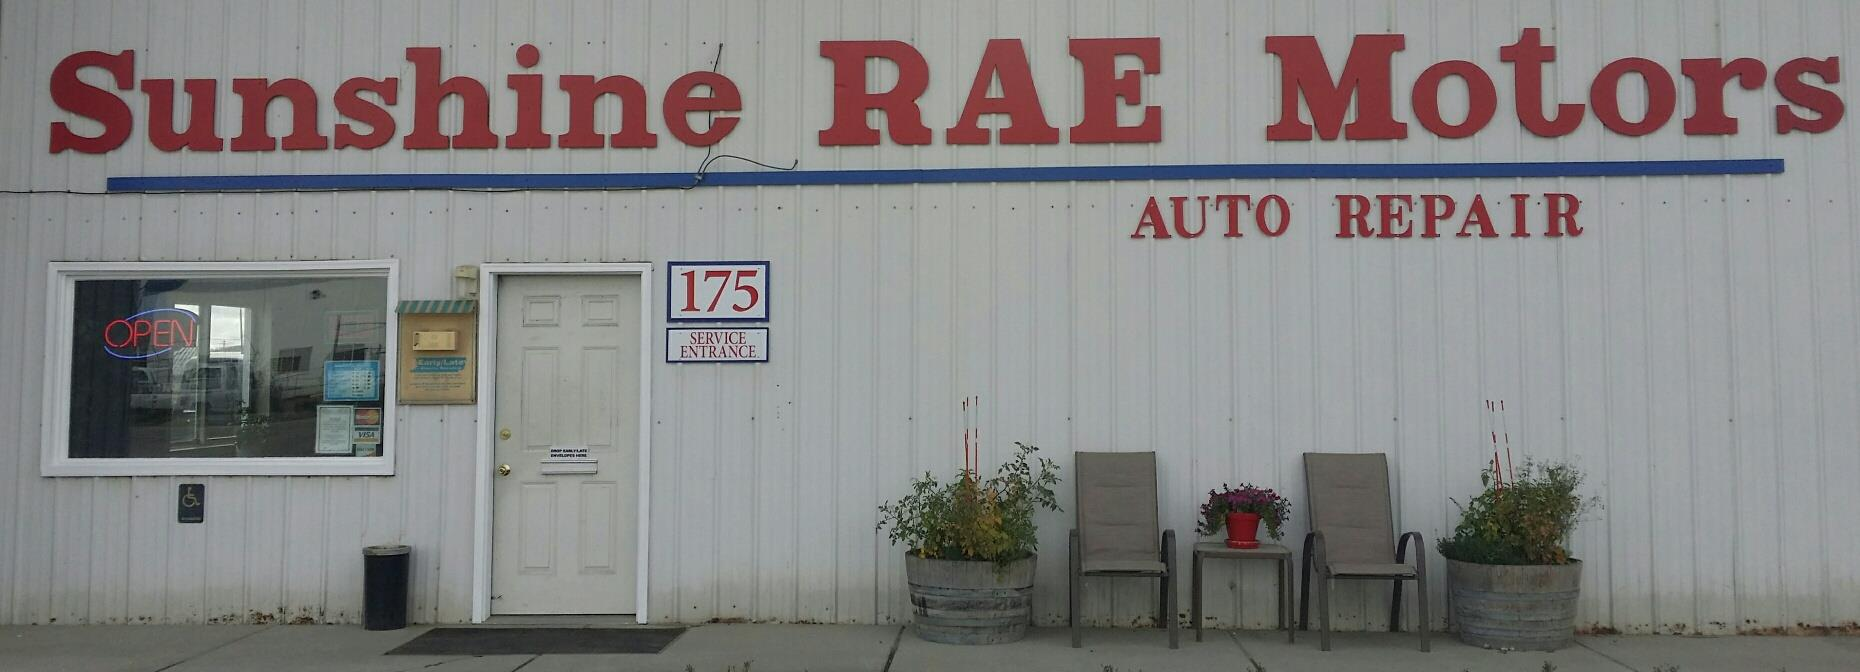 Sunshine Rae Motors, Fairbanks AK, 99701, Auto Repair, Engine Repair, ...